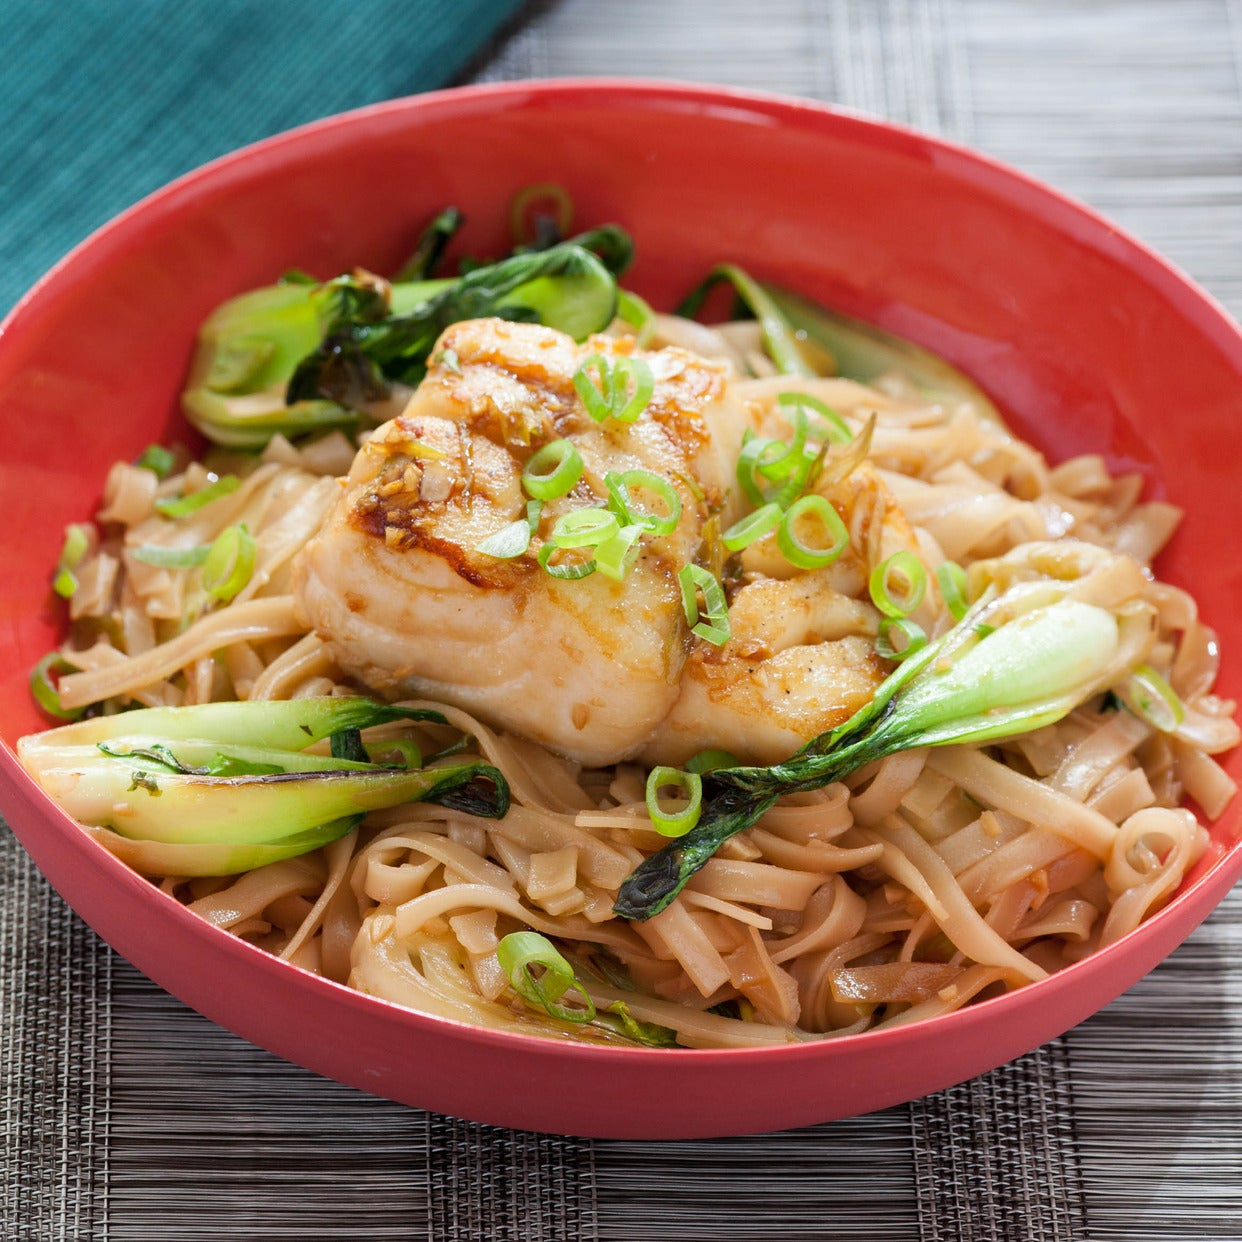 Pan-Seared Cod with Soy Maple Glaze, Baby Bok Choy, and Rice Noodles